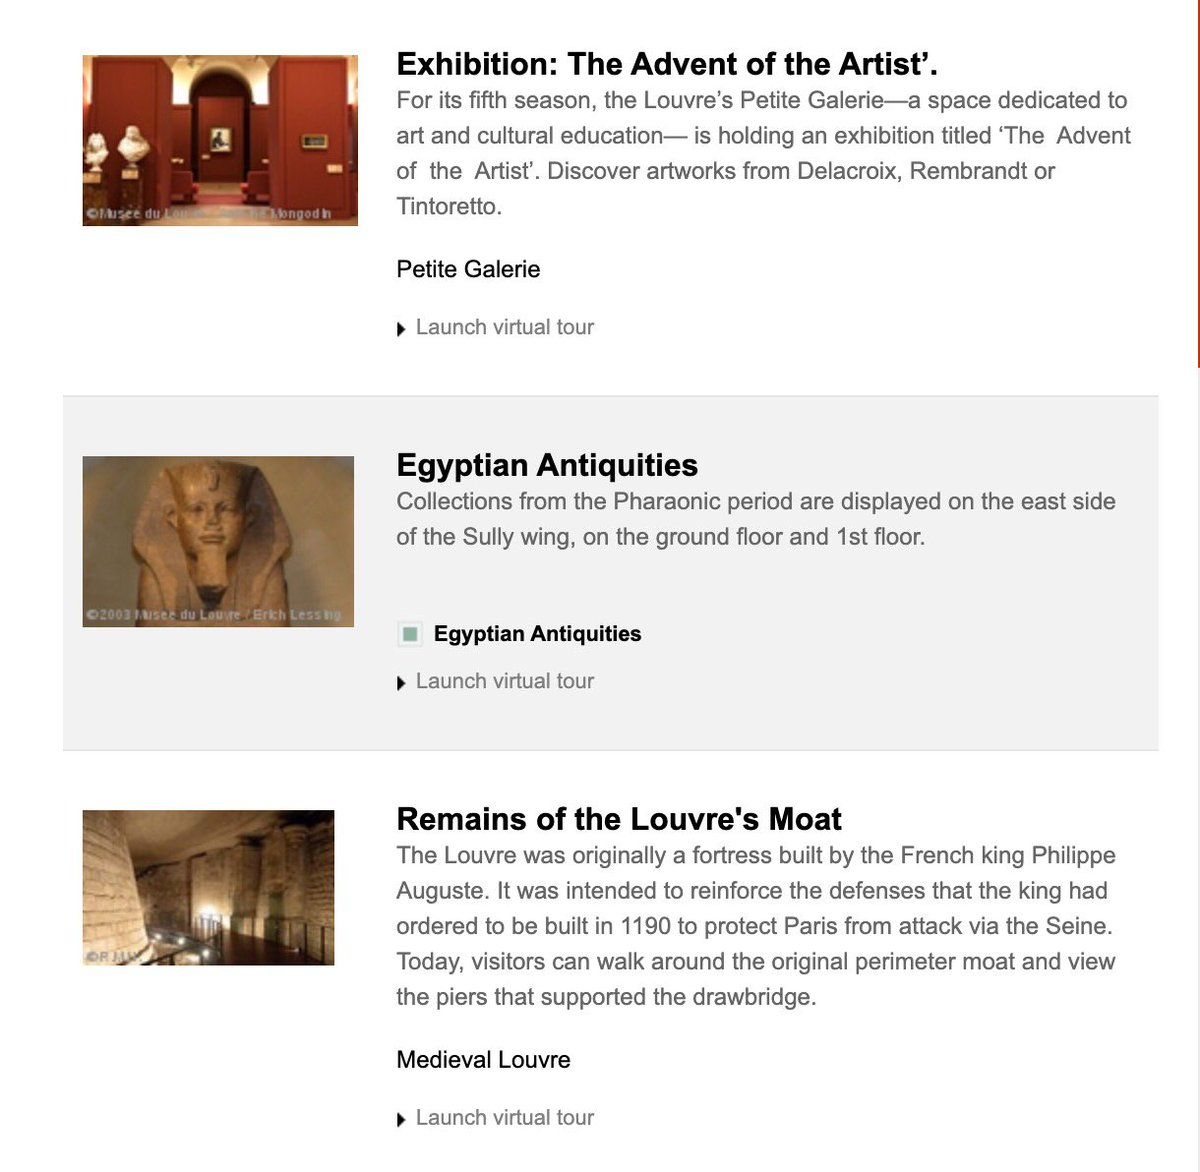 Tired of looking at your living room couch? Tour the Louvre! There are multiple online exhibits available online! https://t.co/MHav3QeXEG https://t.co/J3xB6aGckB